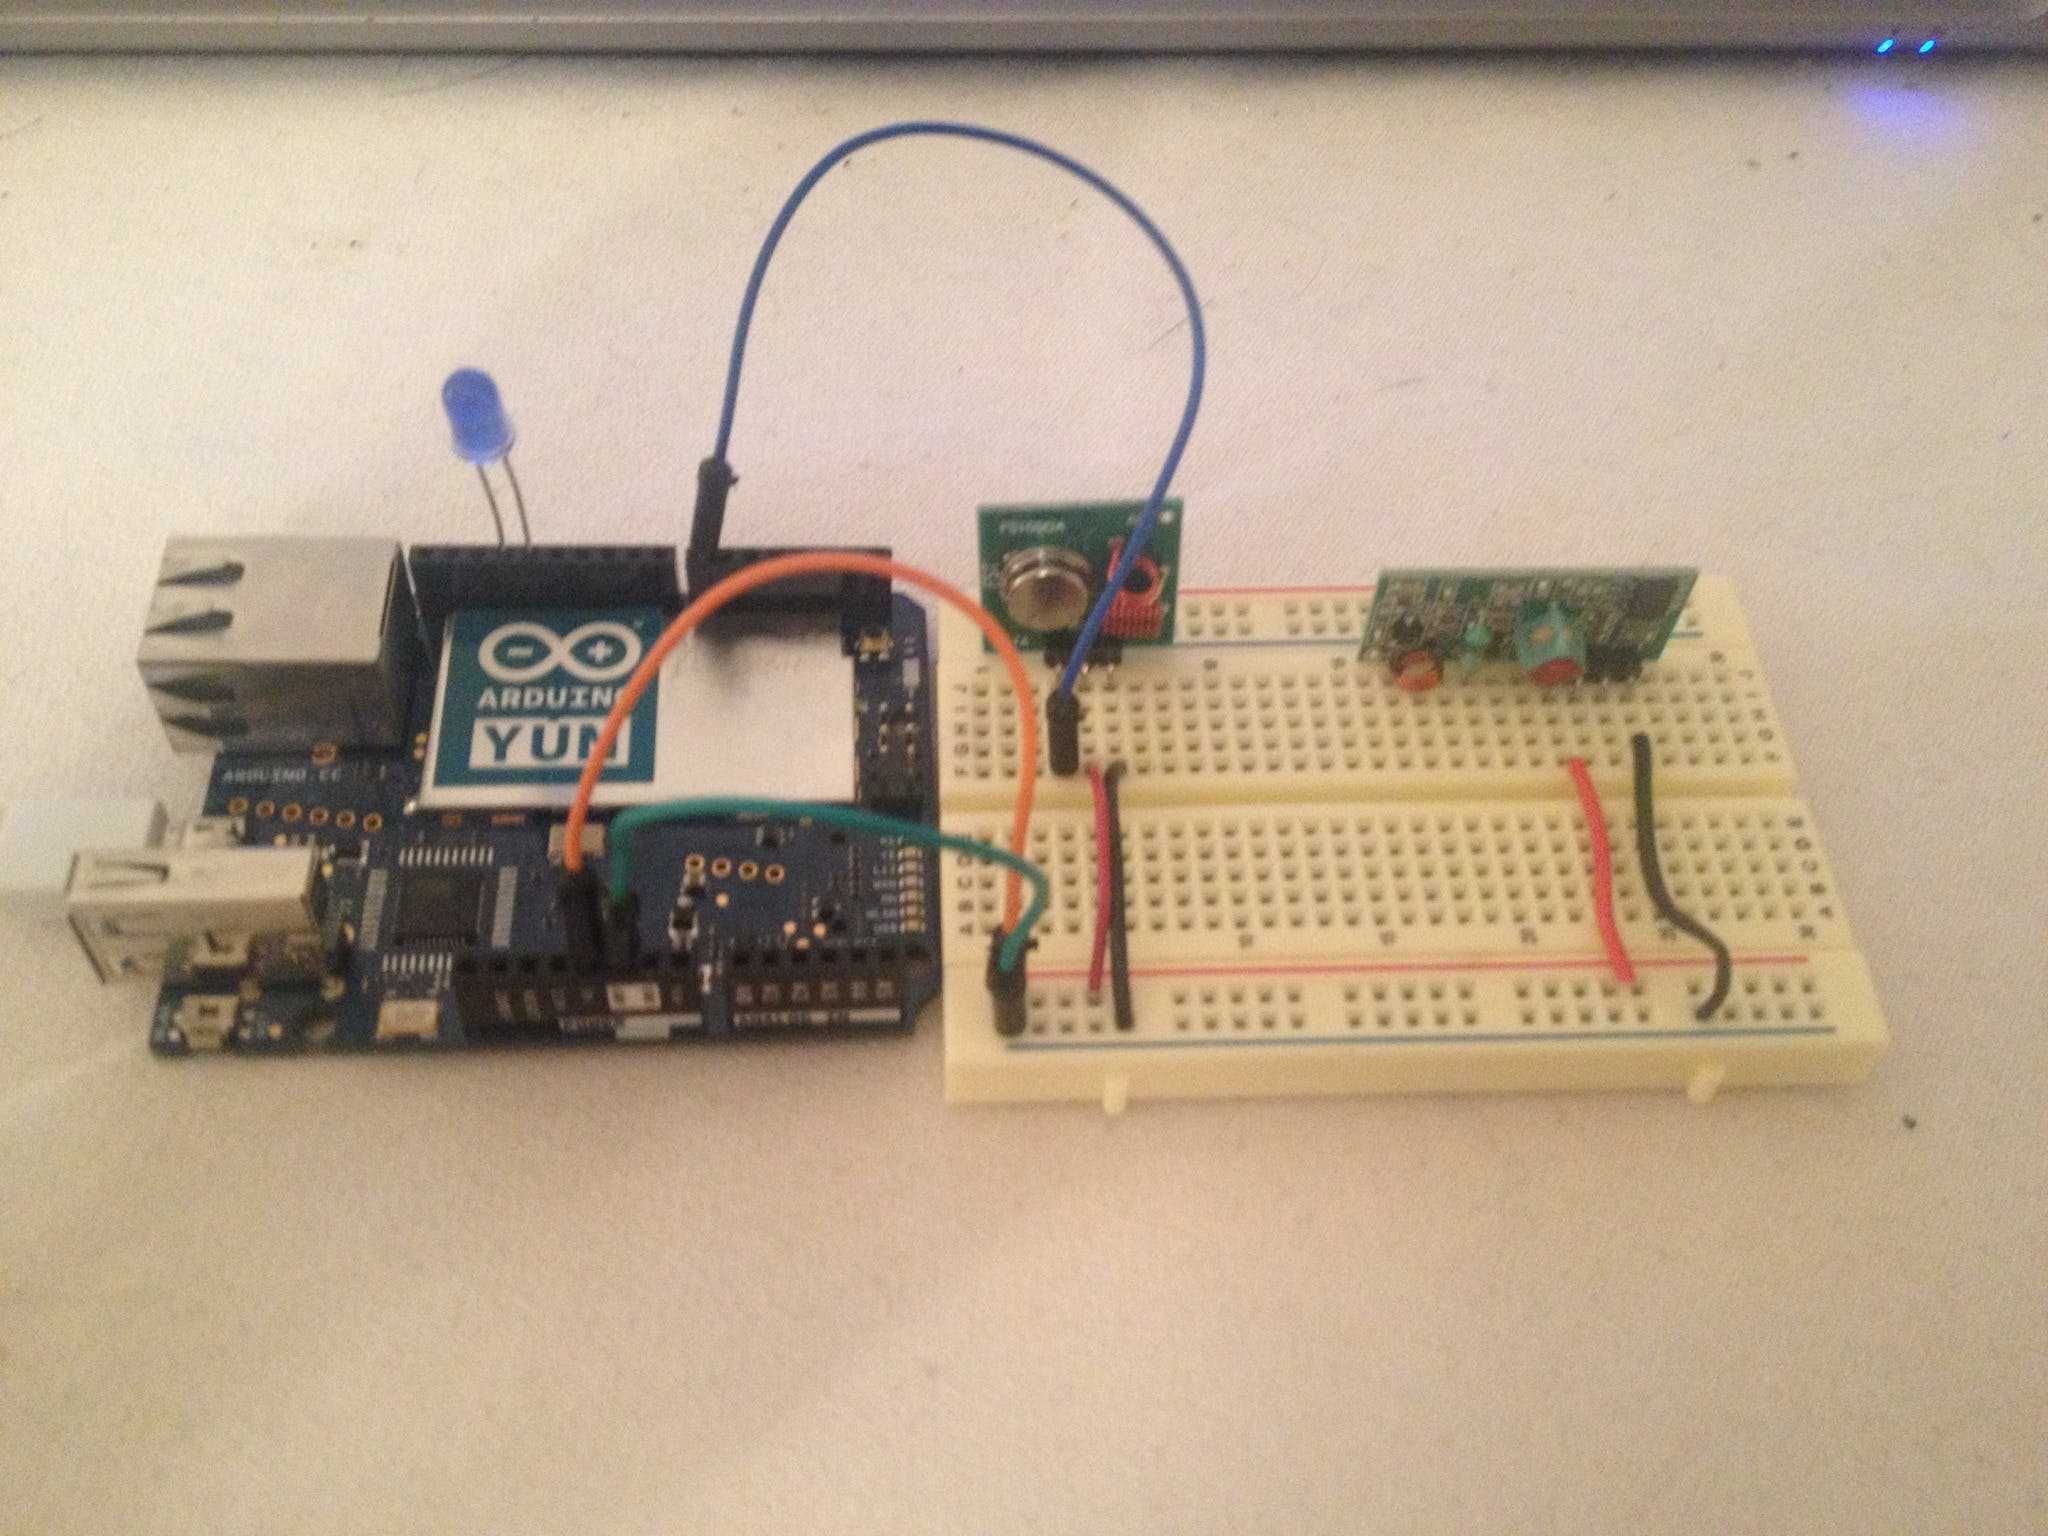 A easy set up of 433 MHz with Arduino Yun